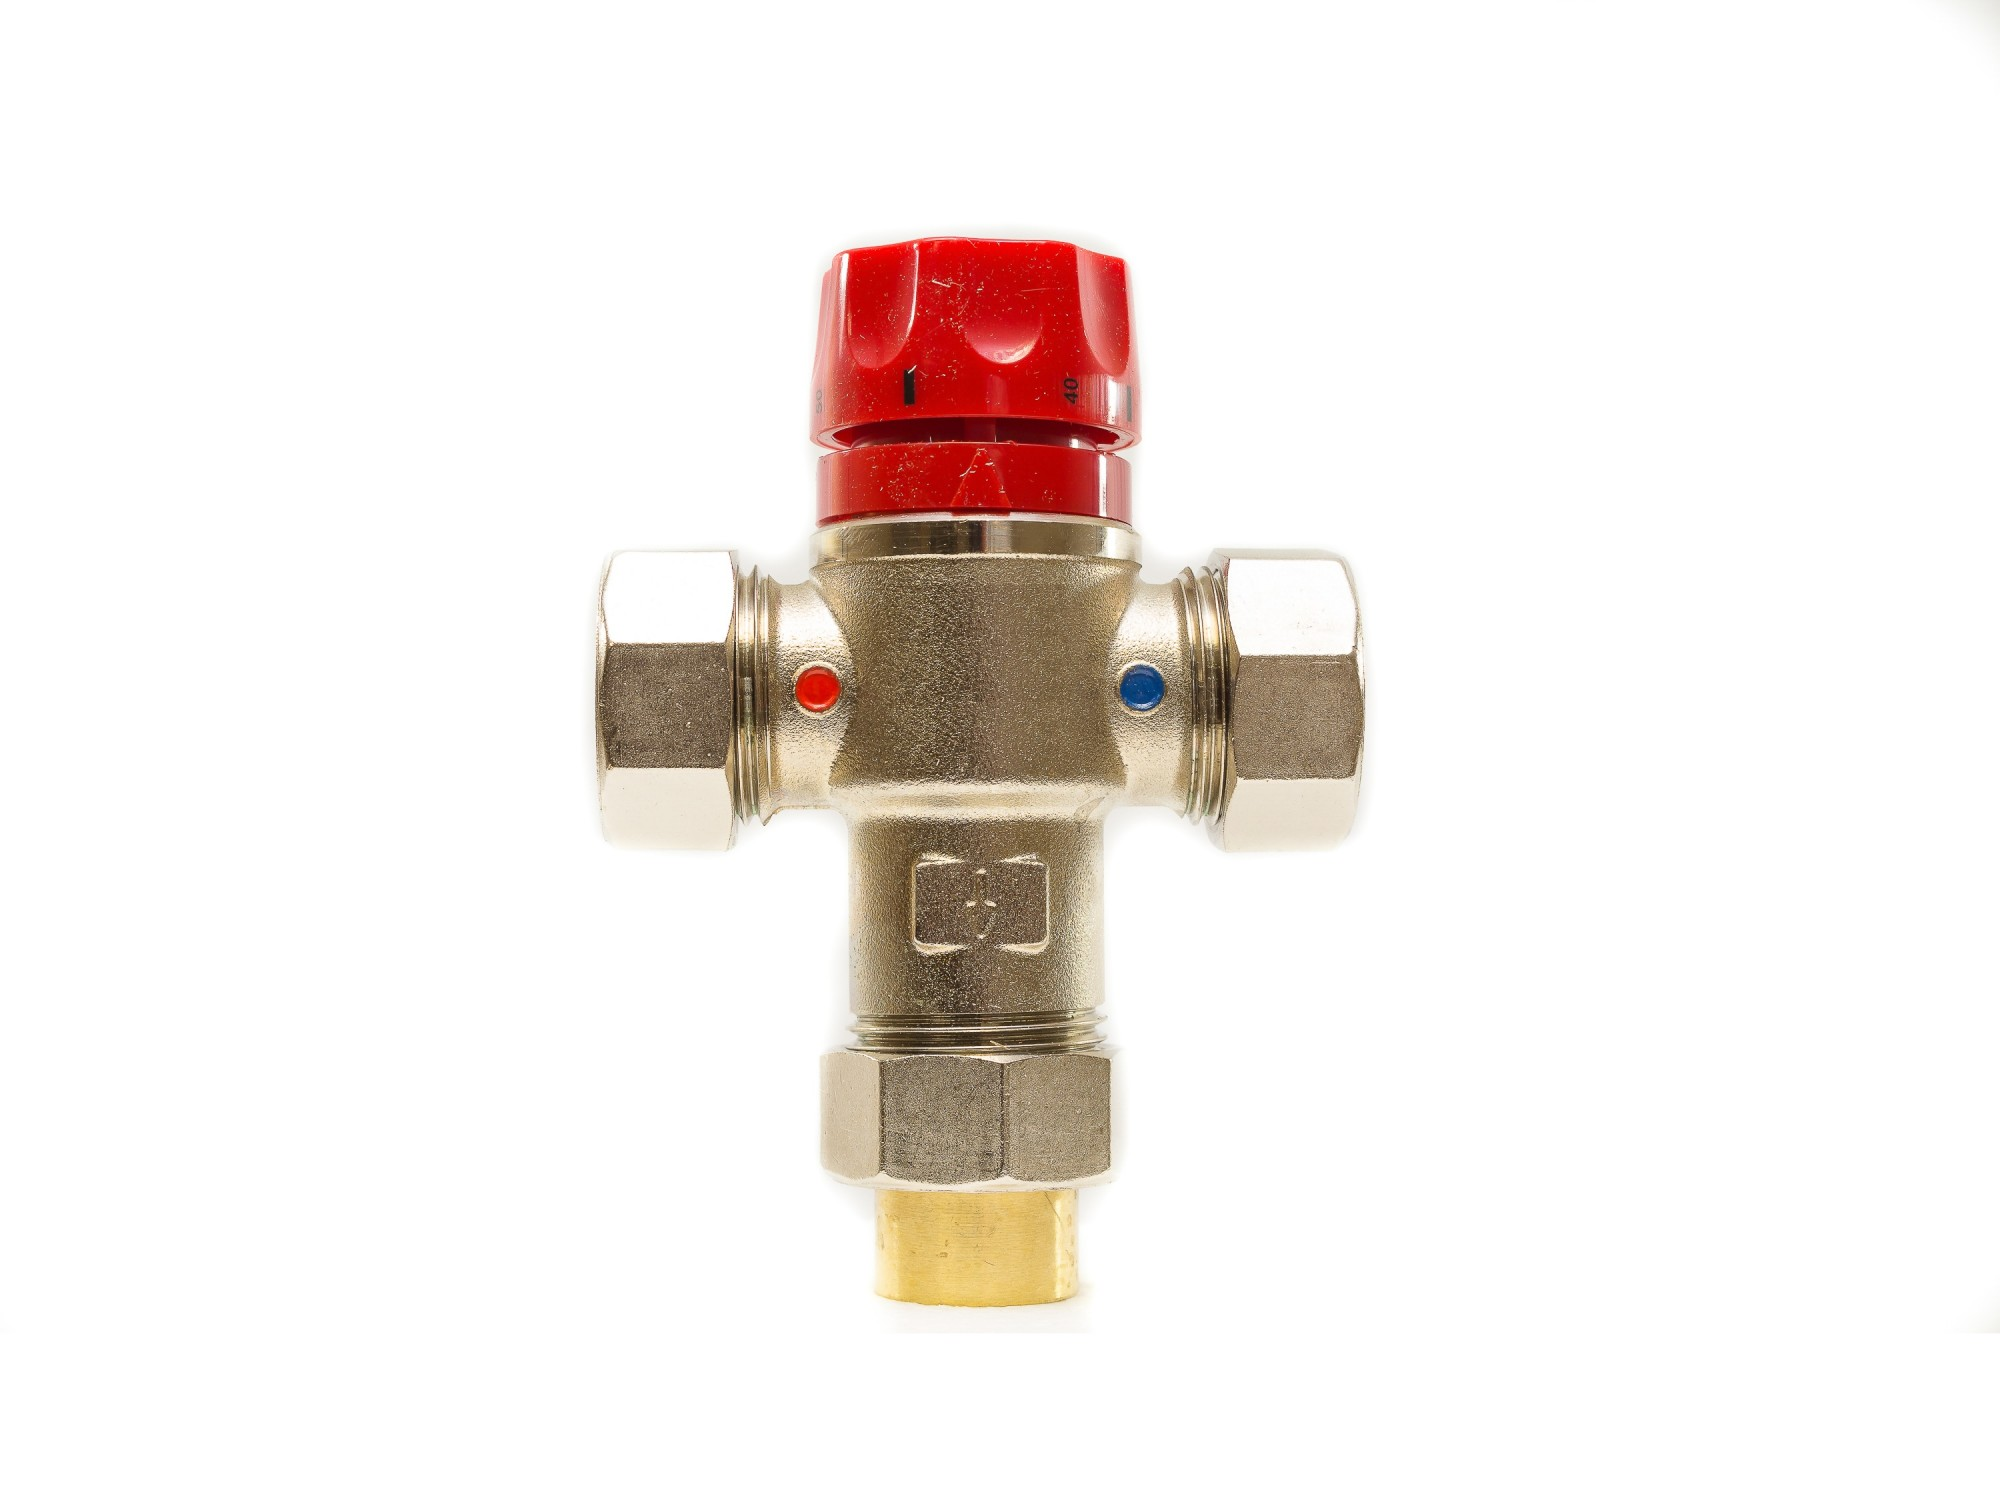 Polypipe Mixing Valve PB219058